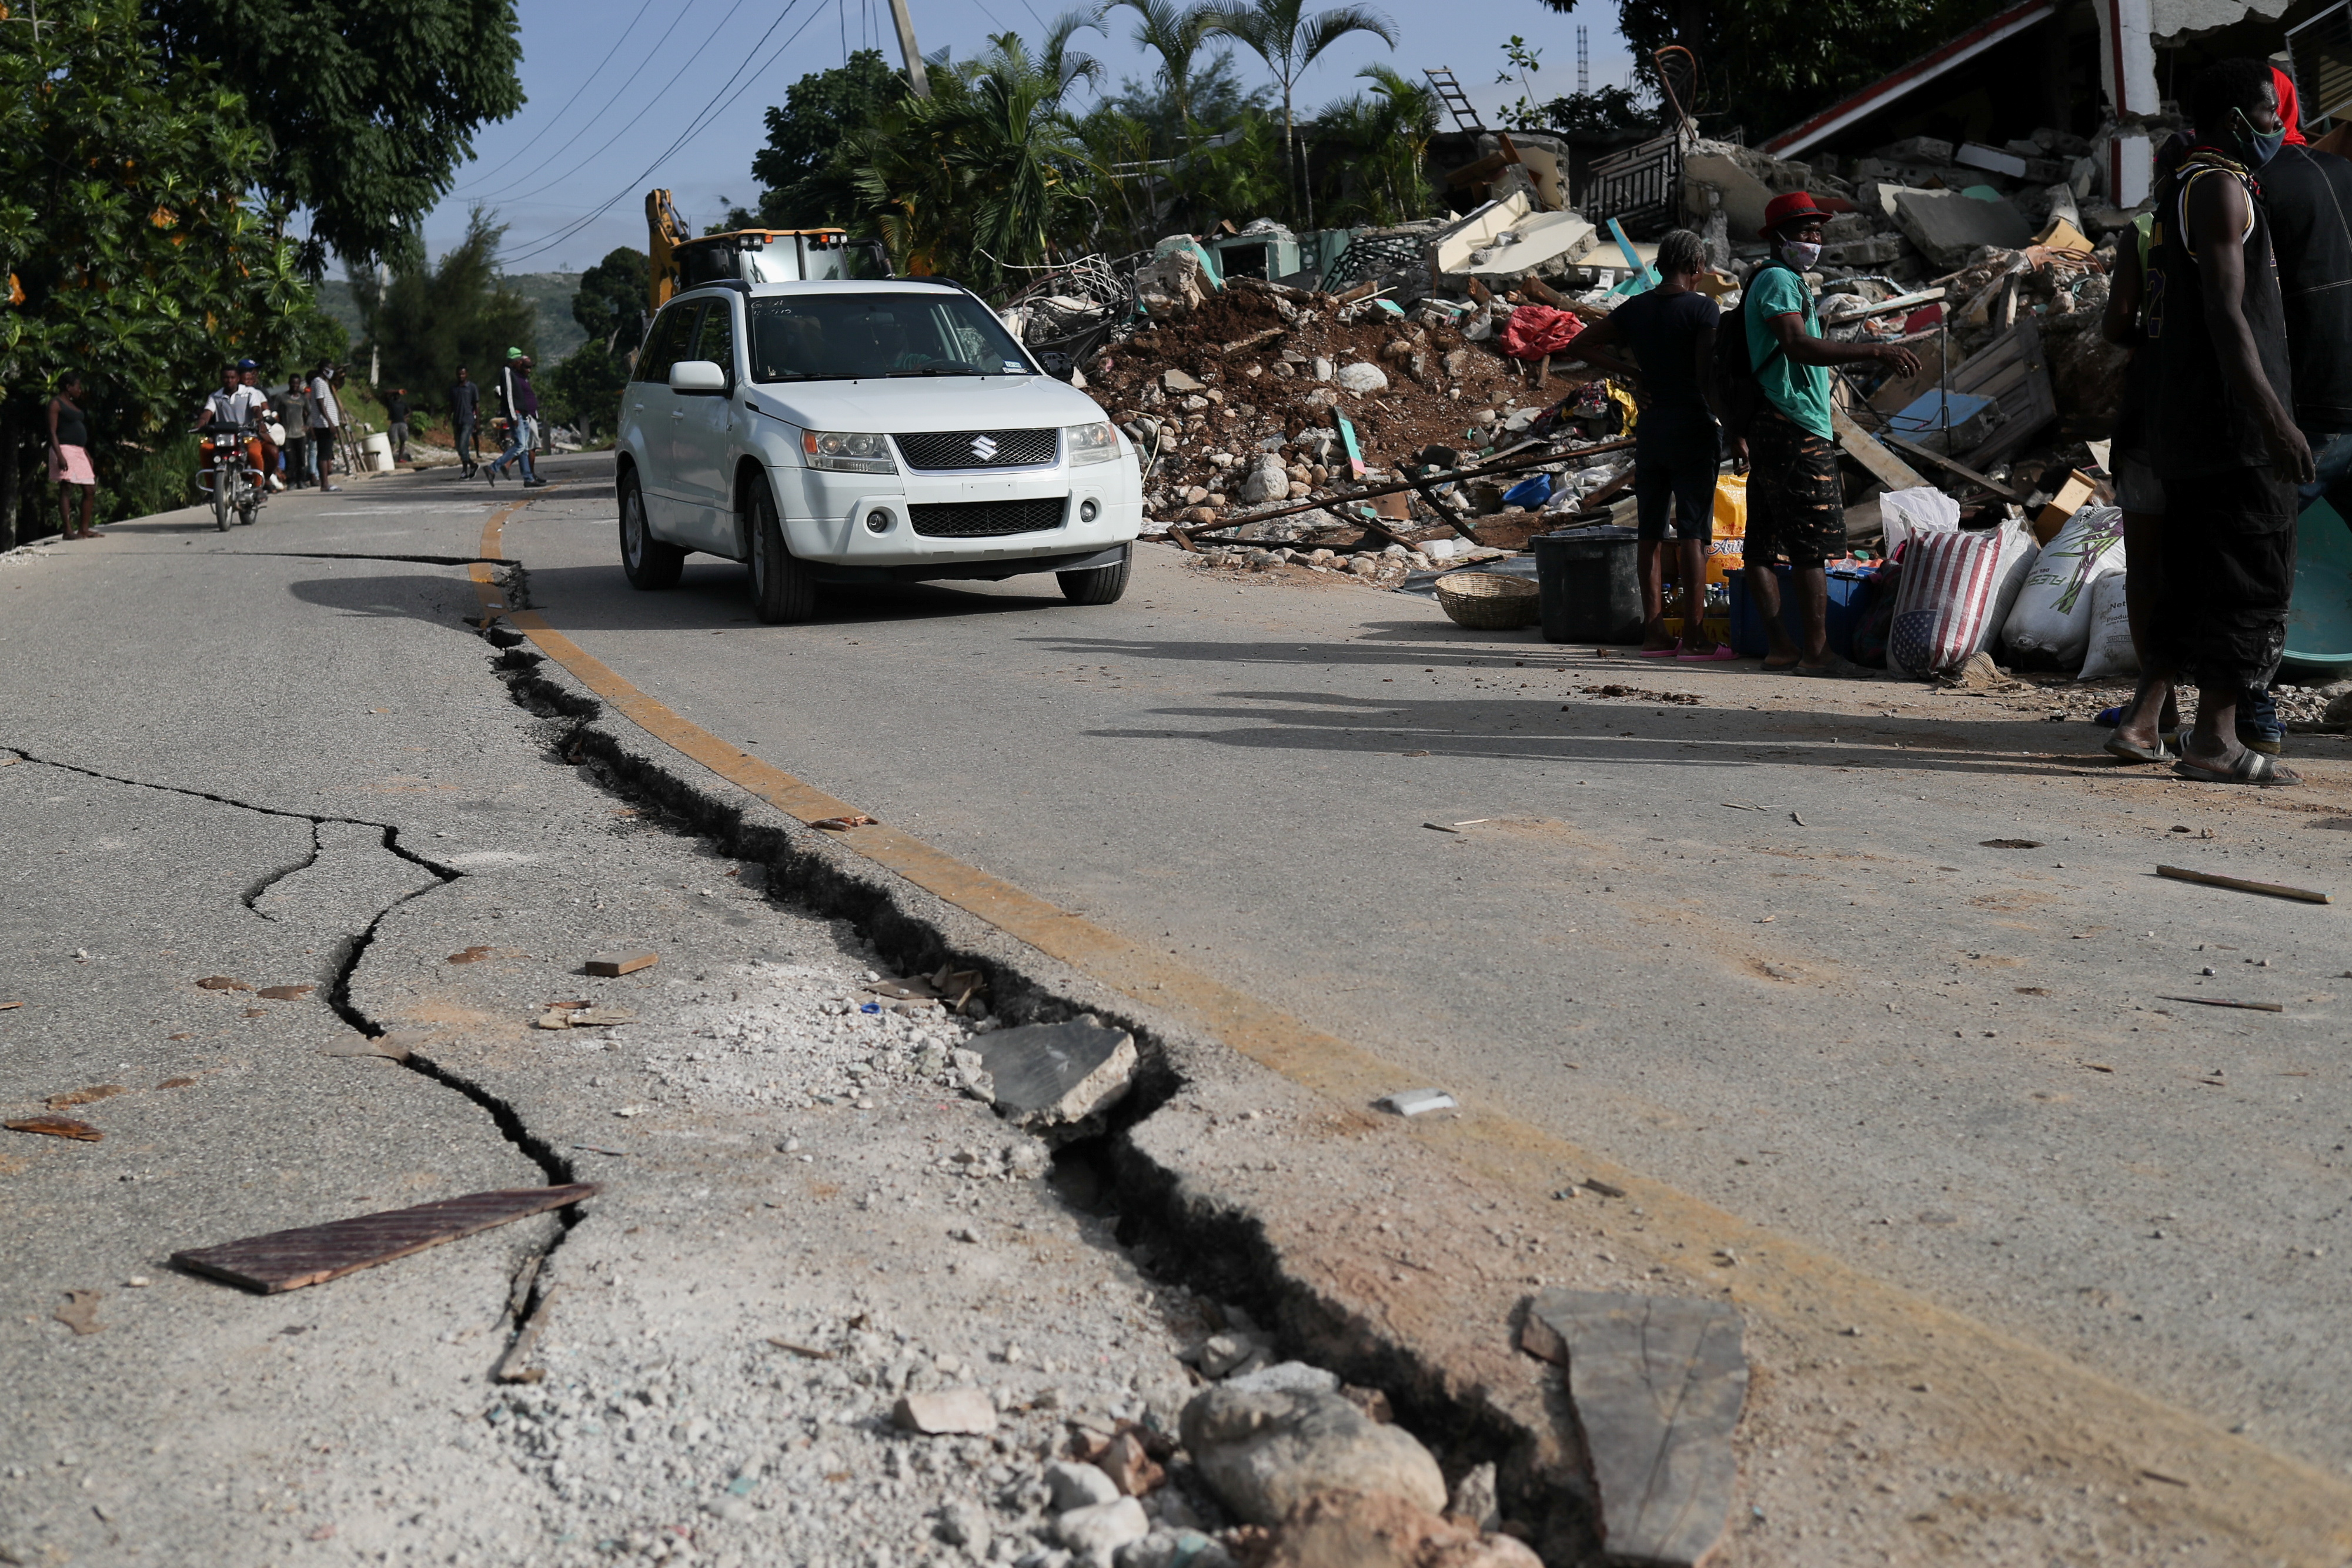 A car drives past a damaged road, after the earthquake that took place on August 14th, in Marceline, near Les Cayes, Haiti August 20, 2021. REUTERS/Henry Romero